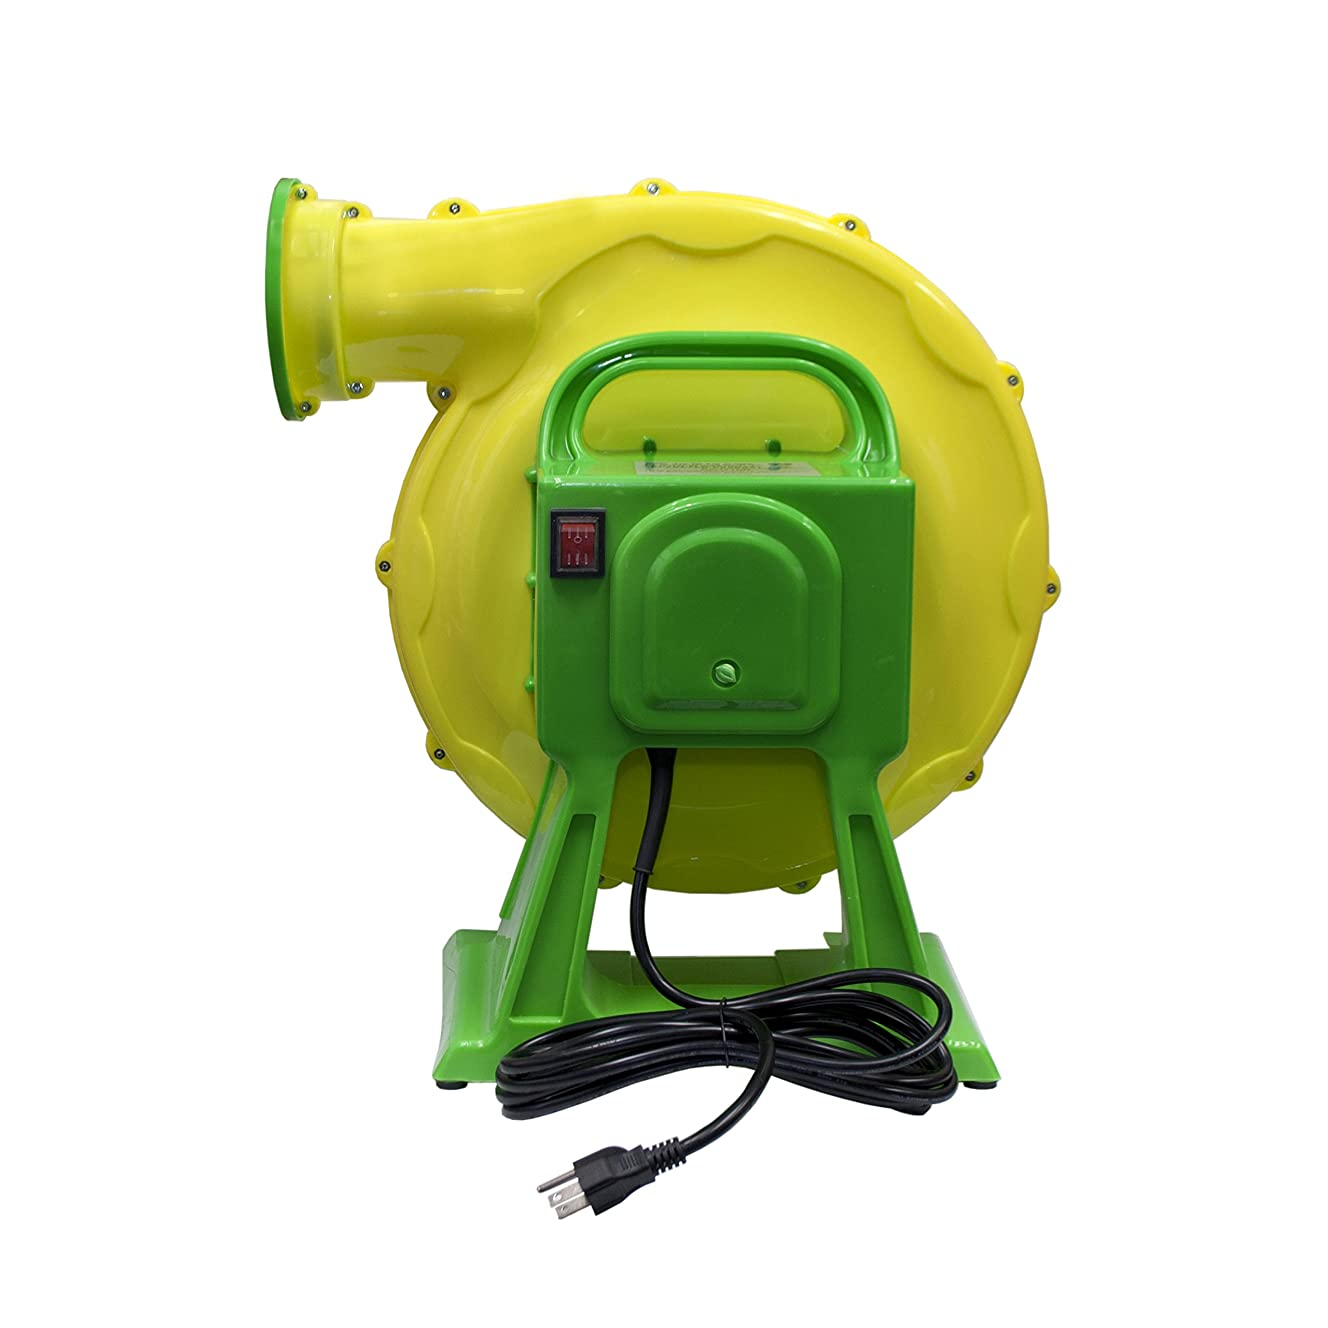 ALEKO BHPUMP1500W Bounce House UL Approved Air Blower Pump Fan for Indoor Outdoor Inflatable Bouncy House 1500 Watts